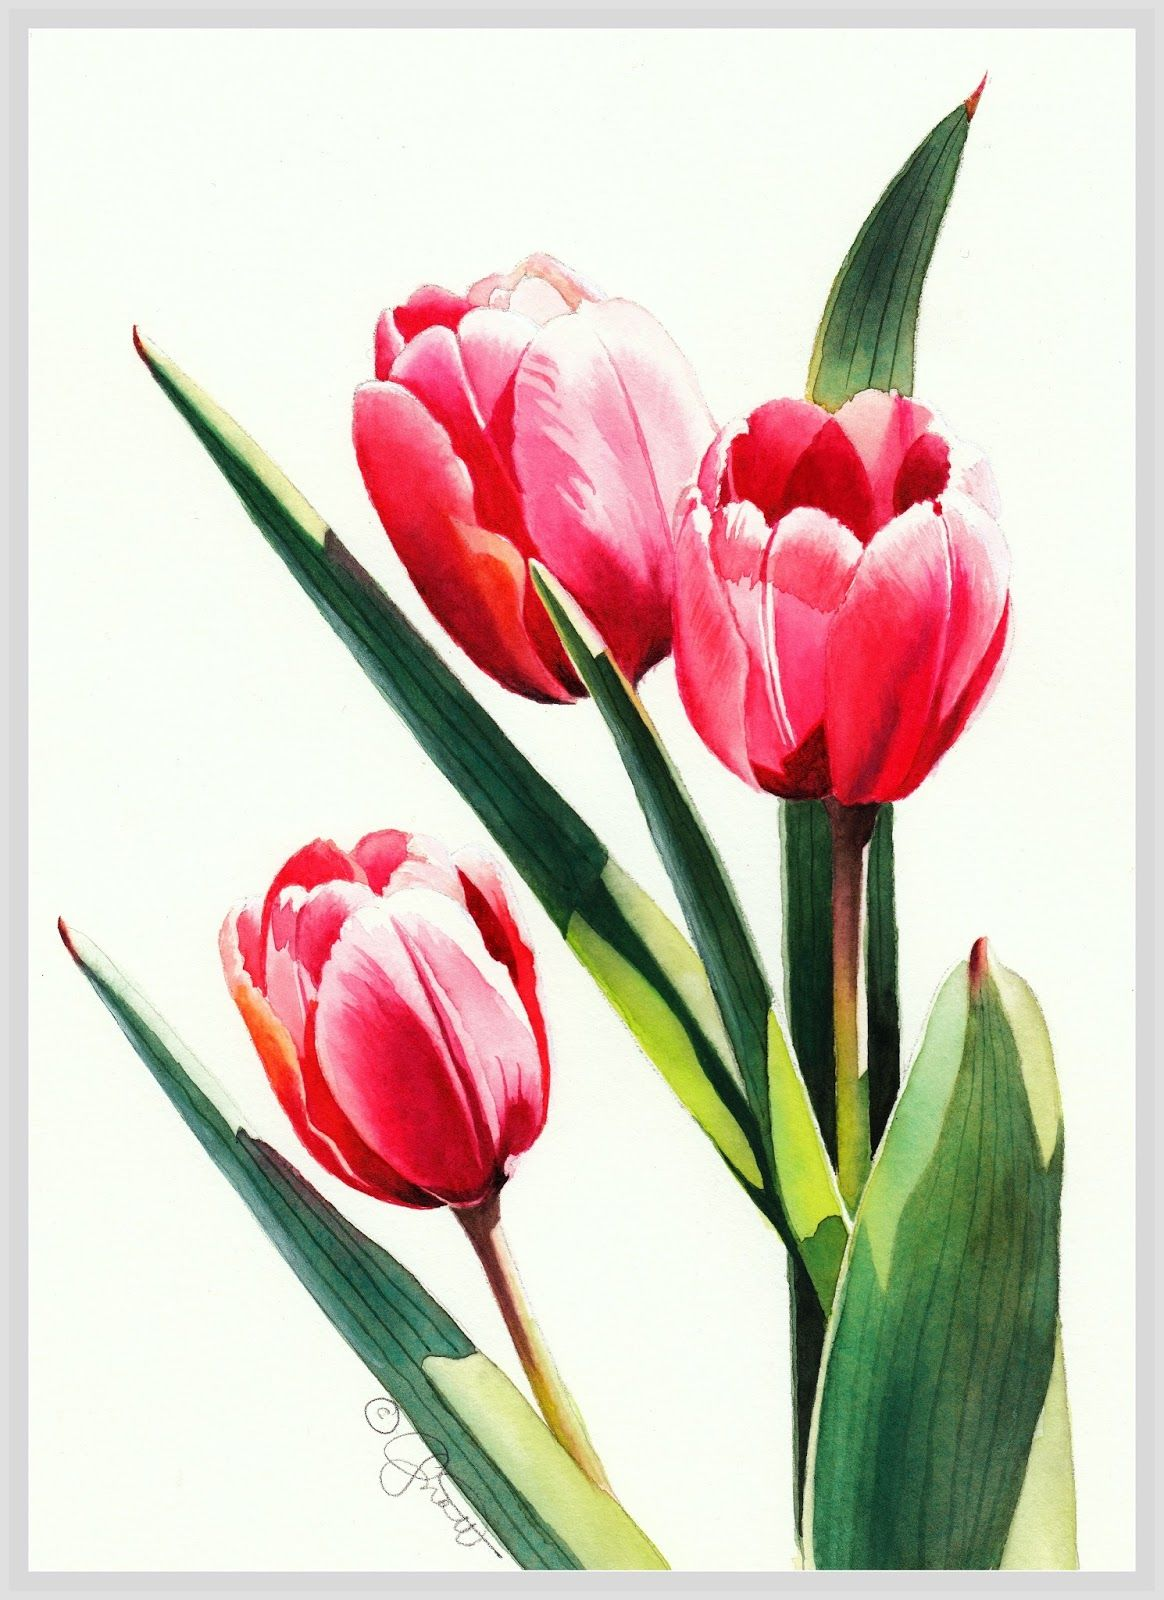 Three Tulips With Images Tulips Art Watercolor Tulips Tulip